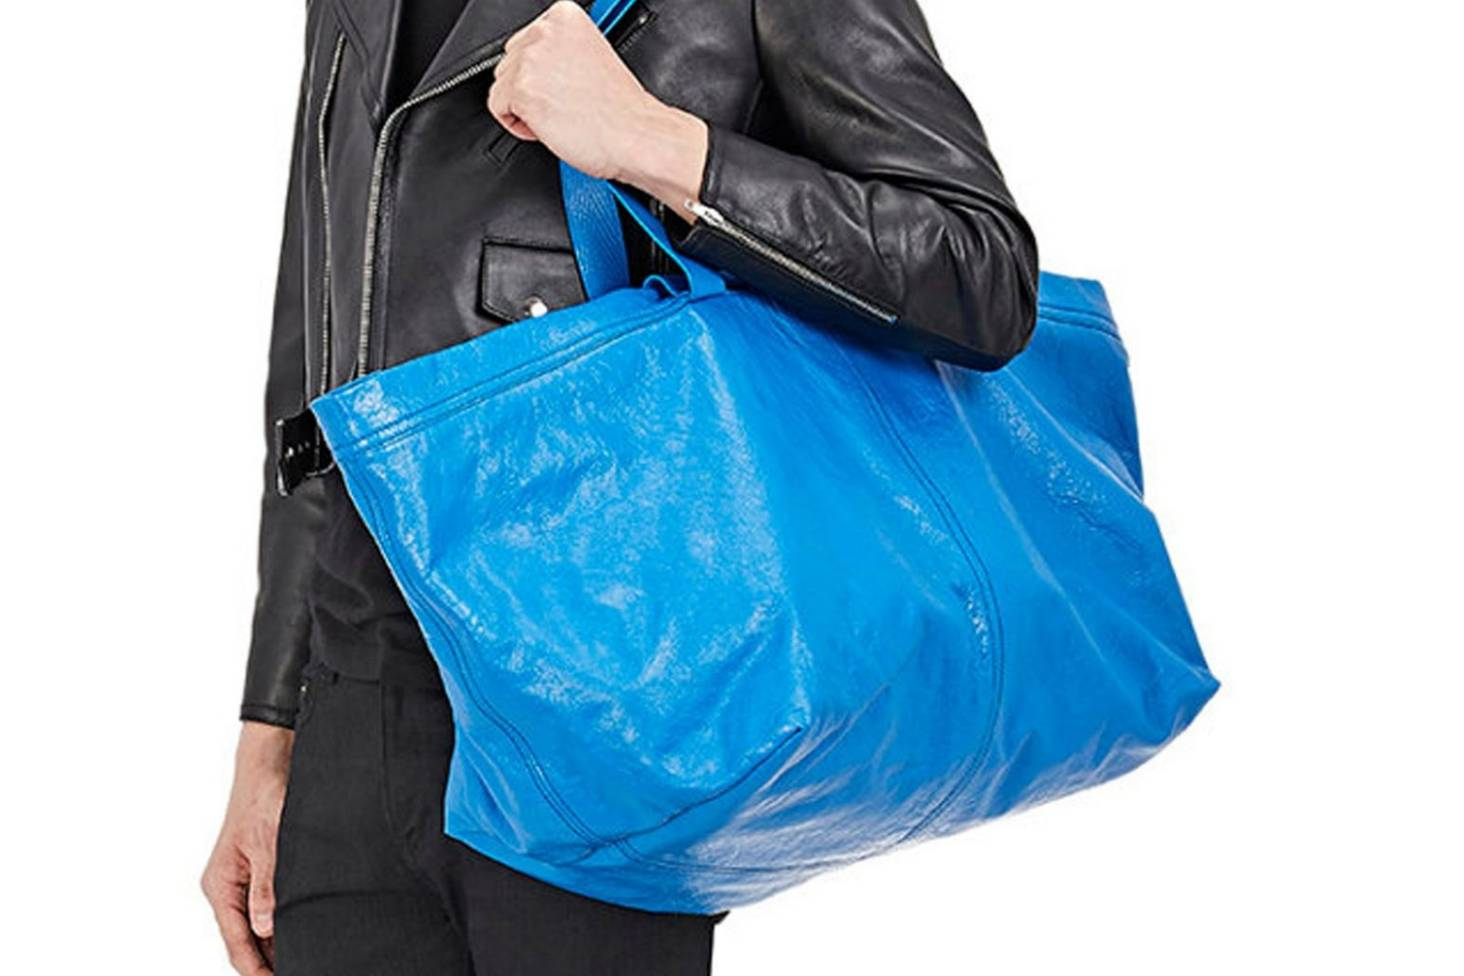 Our take on the  2900 Balenciaga bag that looks just like the  1 IKEA bag 872ada6a0f907